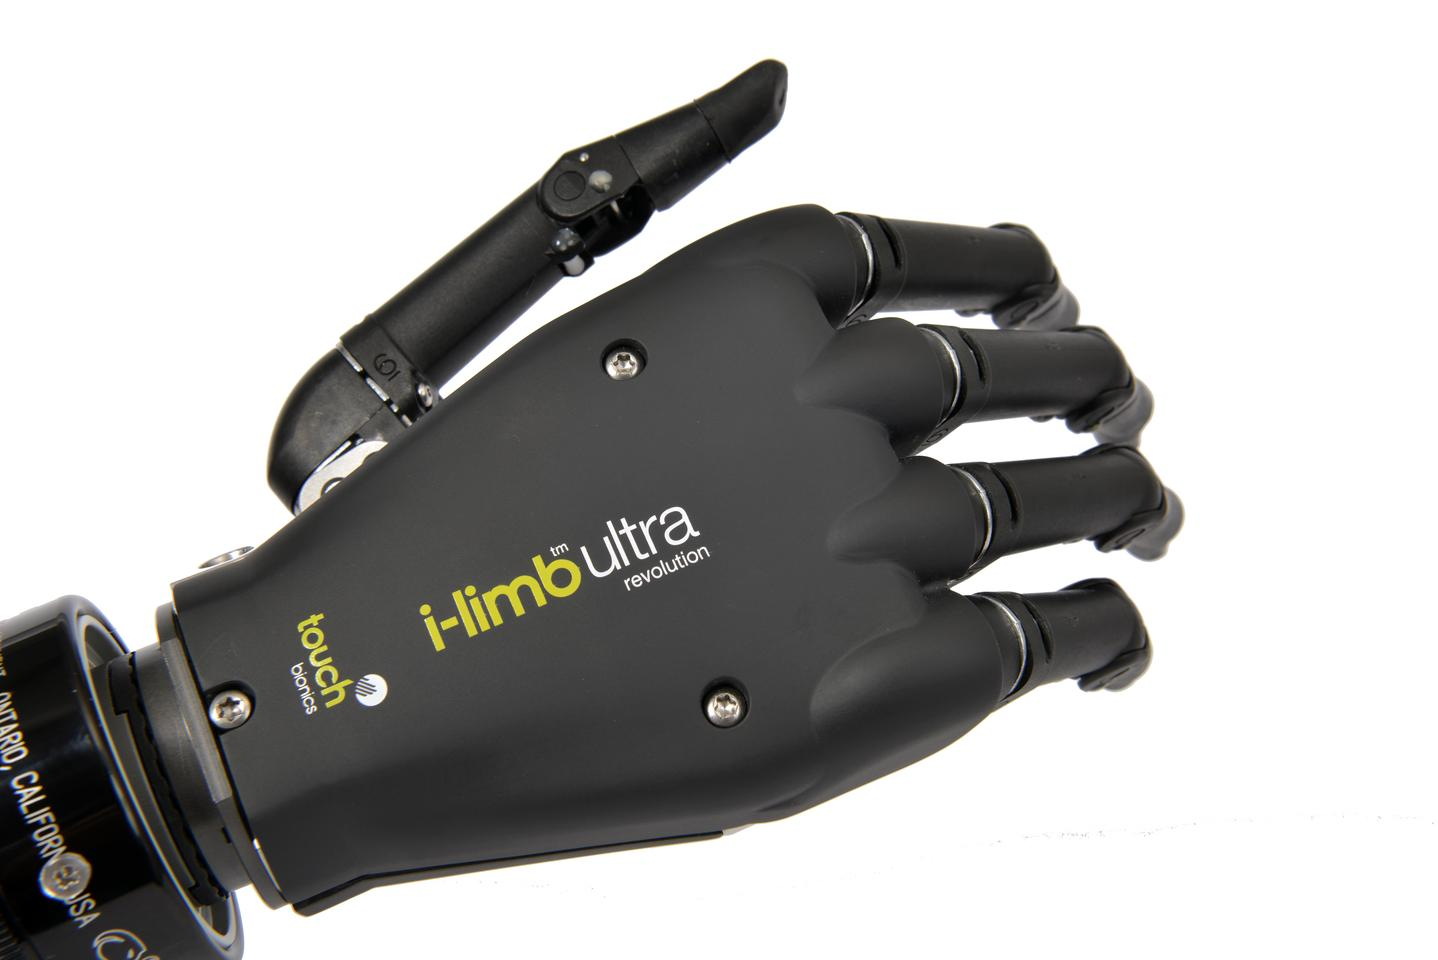 The i-limb ultra revolution prosthetic hand